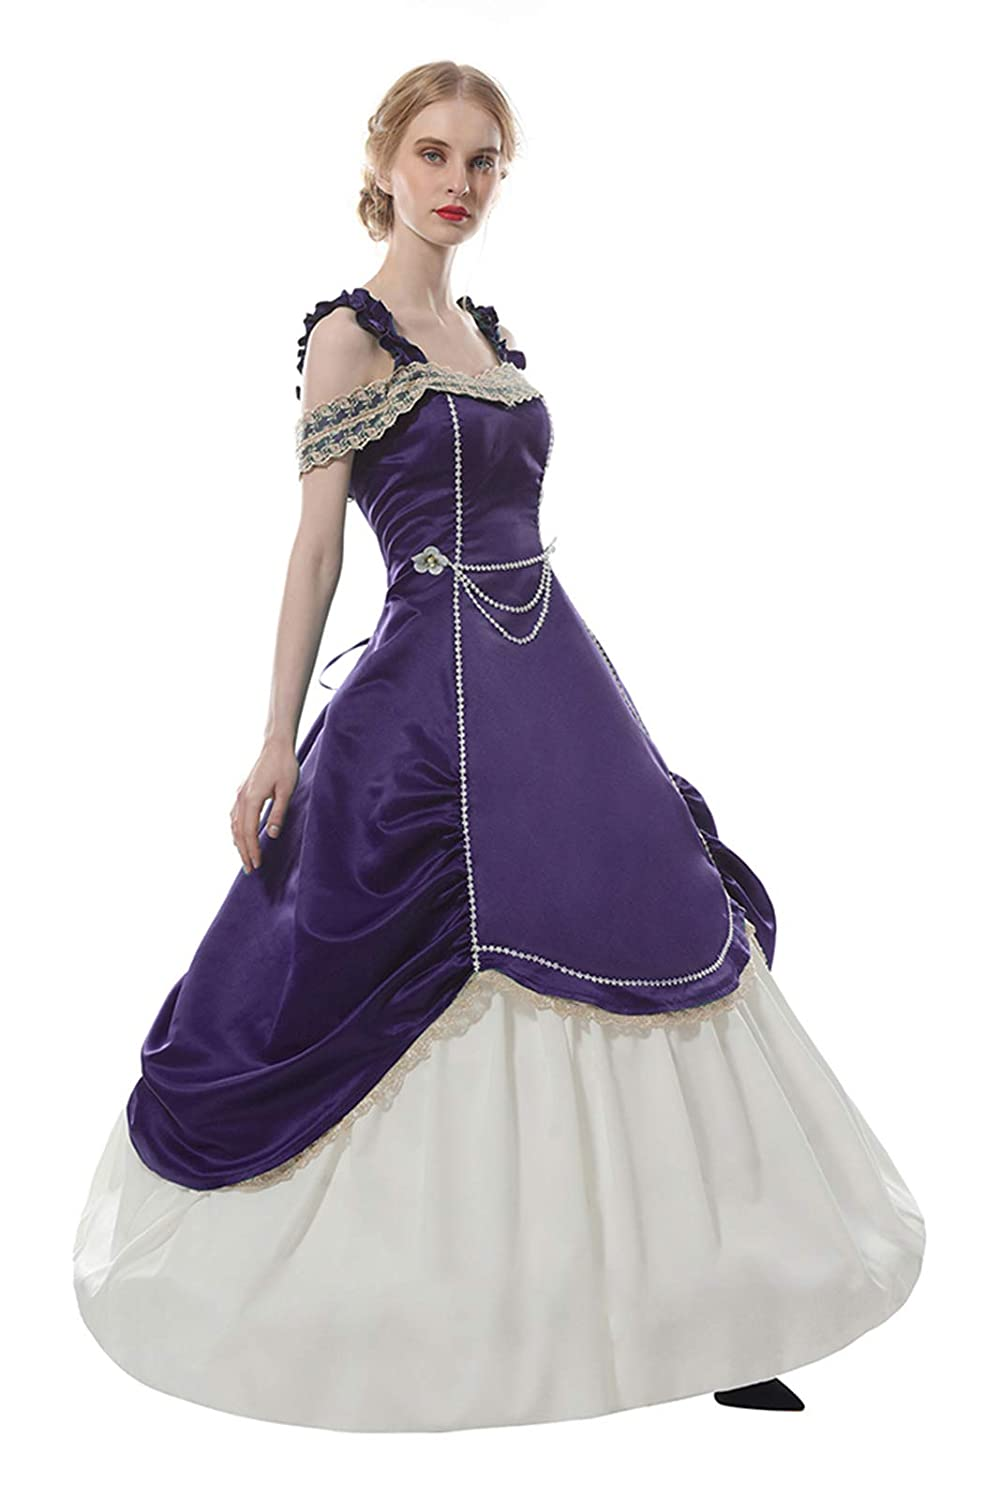 Victorian Dresses | Victorian Ballgowns | Victorian Clothing Lemail Womens Renaissance Medieval Dress 1800s Victorian Era Masquerade Dresses $59.99 AT vintagedancer.com